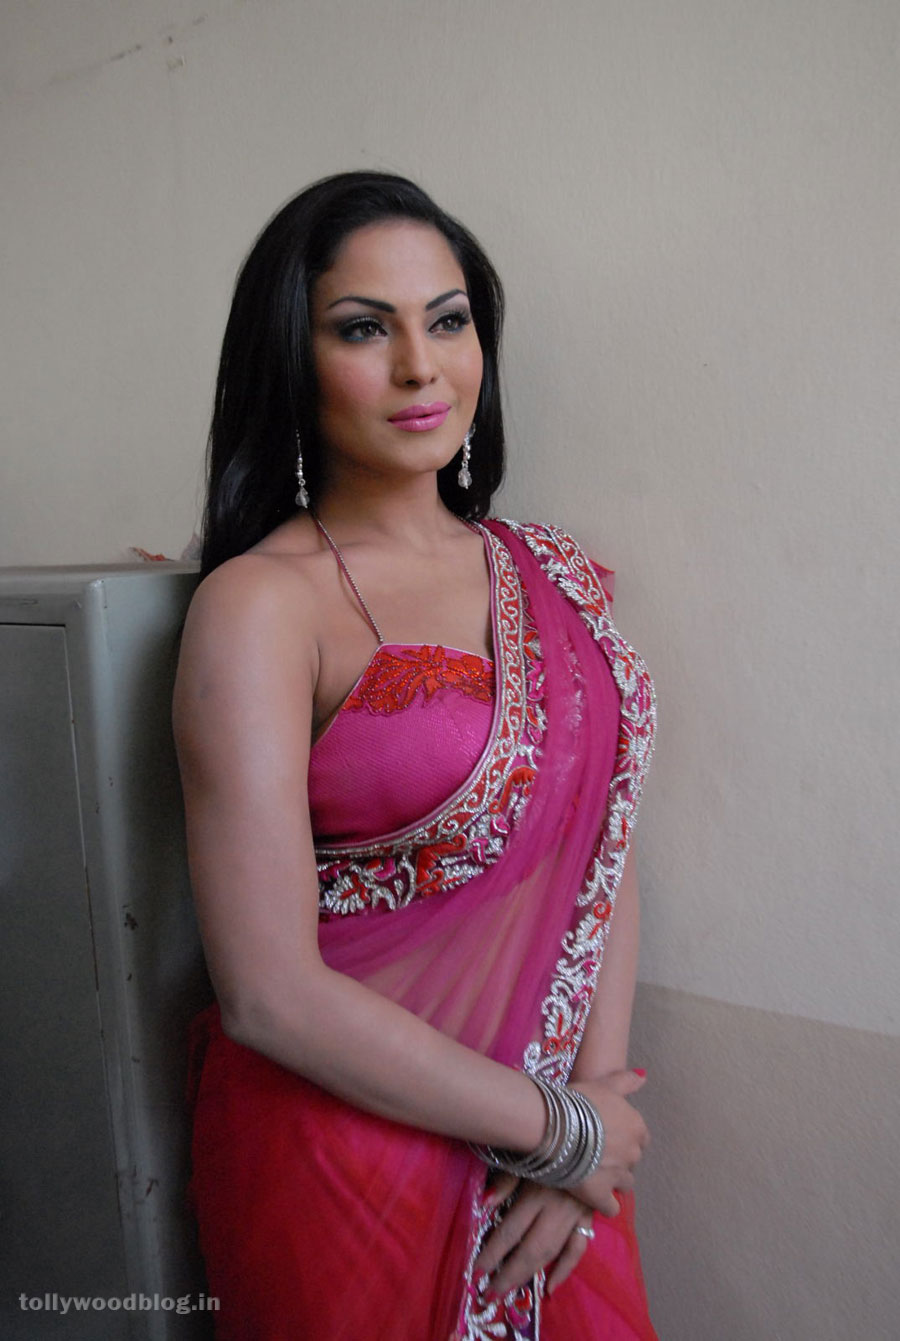 hot Veena malik new